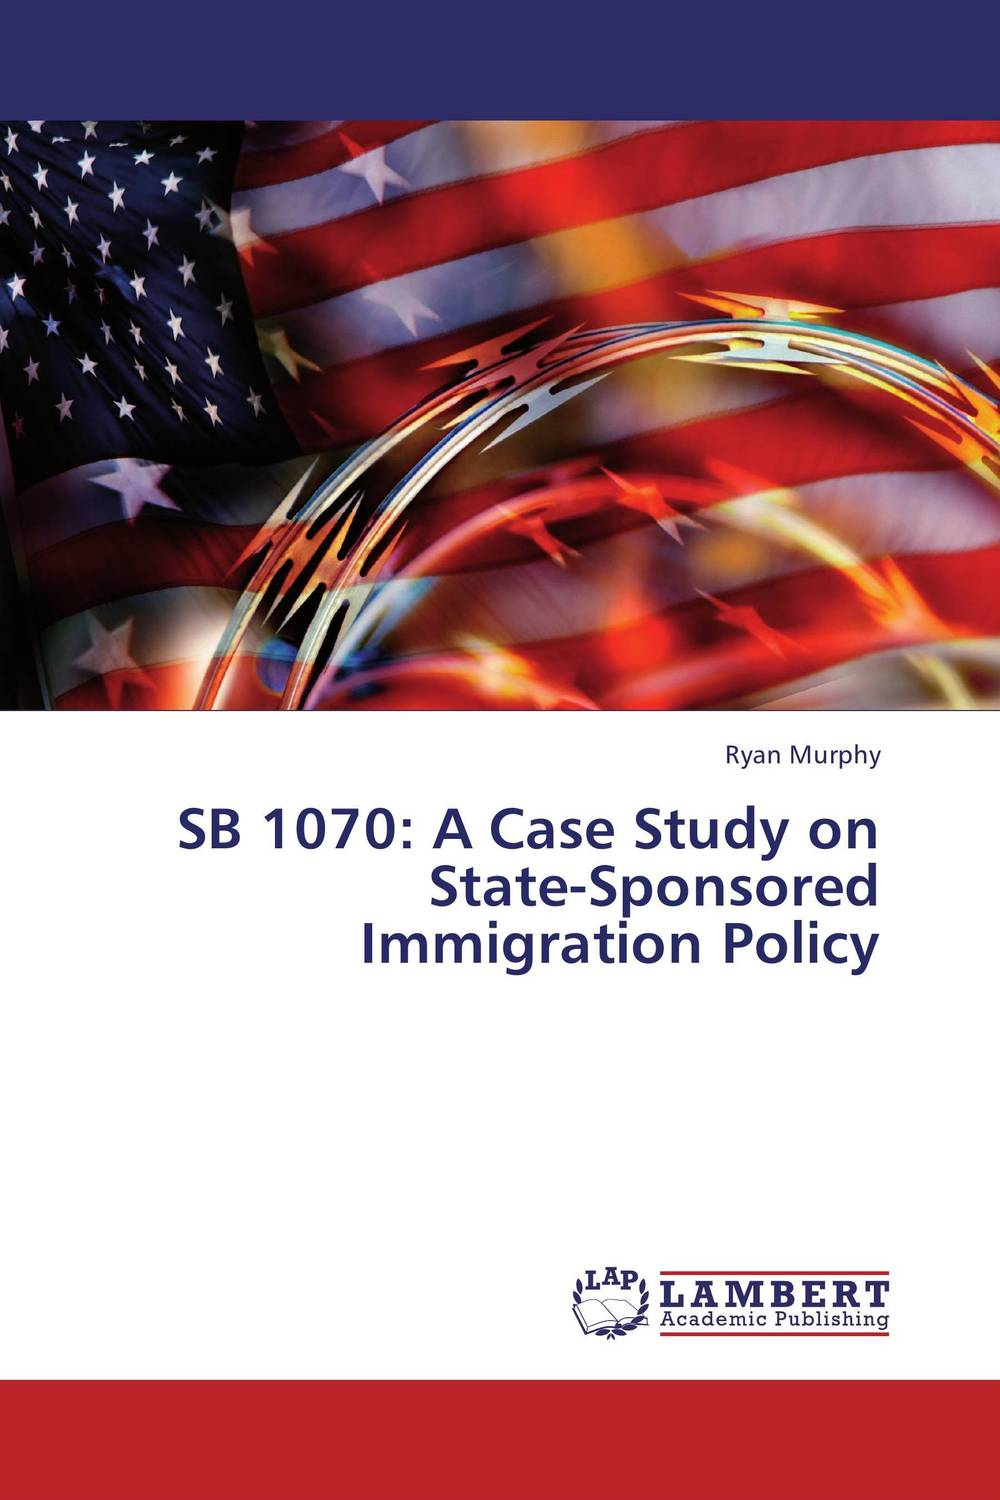 SB 1070: A Case Study on State-Sponsored Immigration Policy sb 1070 a case study on state sponsored immigration policy